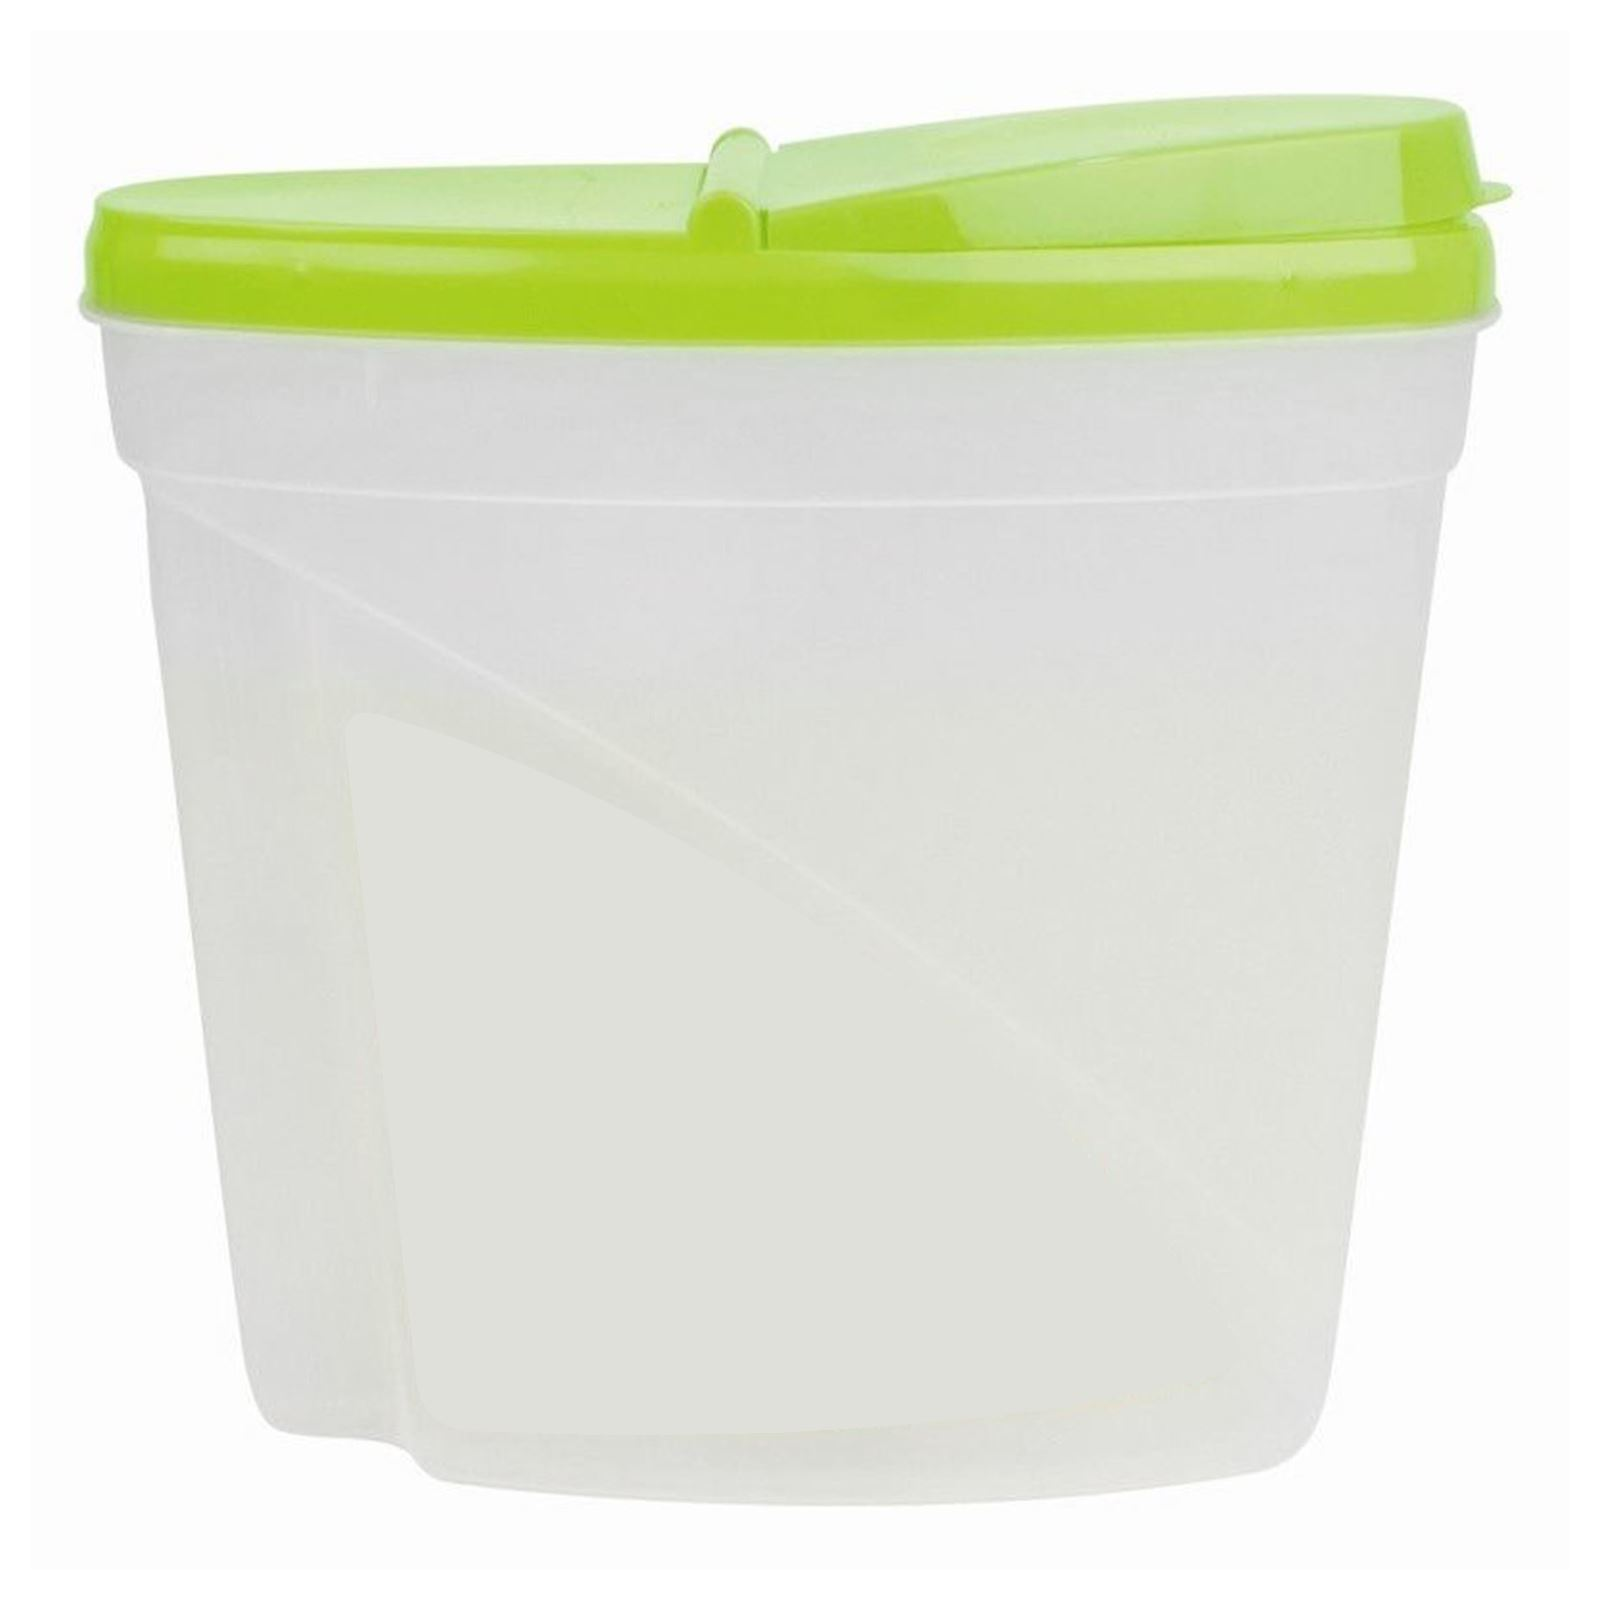 35L Dry Food Storage Container Large Plastic Box Cereal Dispenser